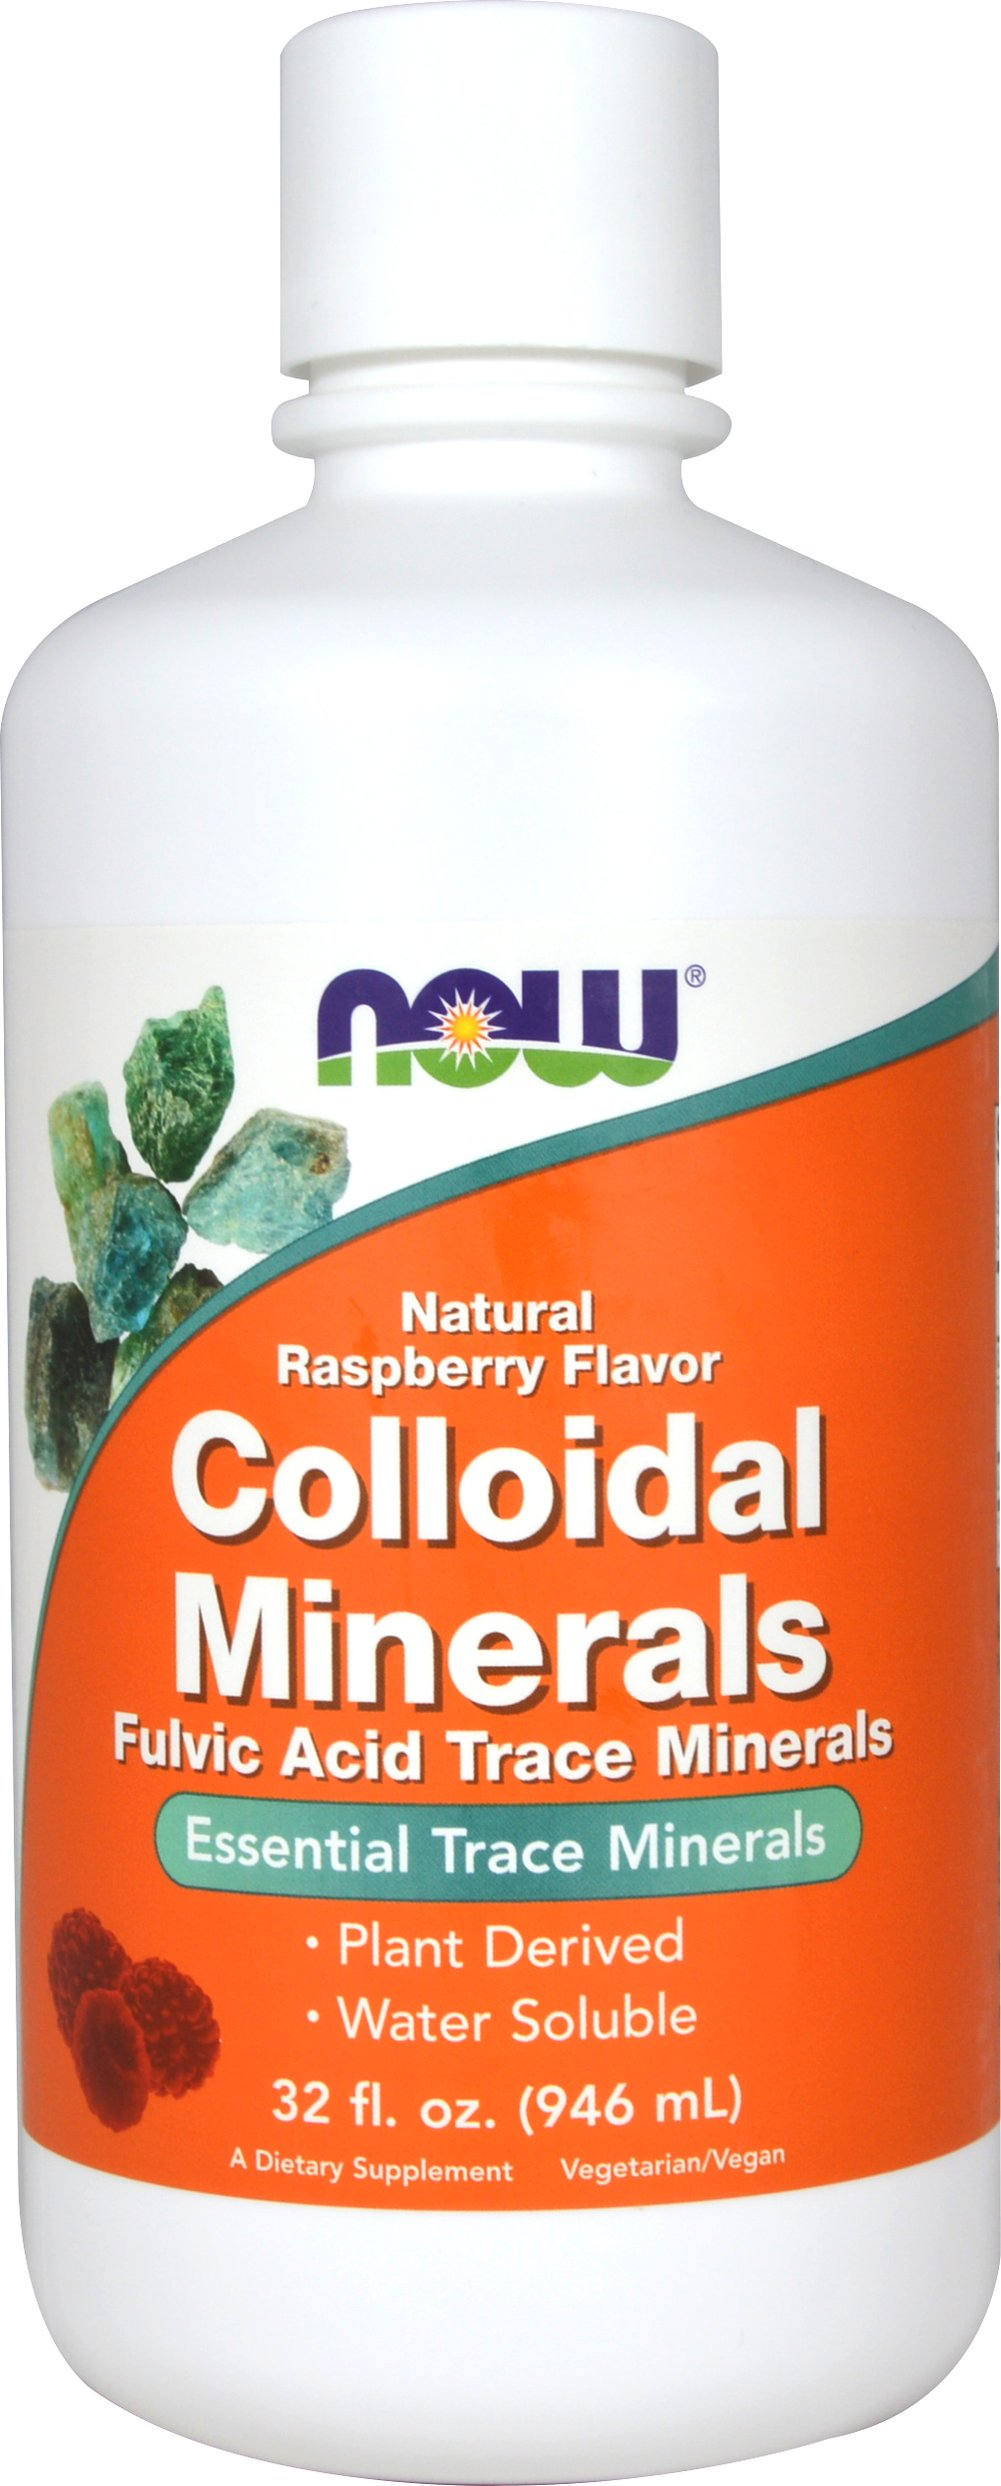 Colloidal Mineral Raspberry <p><b>From the Manufacturer's Label:</b></p> <p>Essential Trace Minerals</p> <p>Fulvic Acid Trace Minerals</p> <p>- Plant Derived</p> <p>-Water Soluble</p>  <p>NOW® Raspberry Flavored Colloidal Minerals is a pleasant tasting blend comprised of highly absorbable, water-soluble minerals derived from prehistoric plant deposits in Utah. Each 1 ounce serving has naturally occurring tr